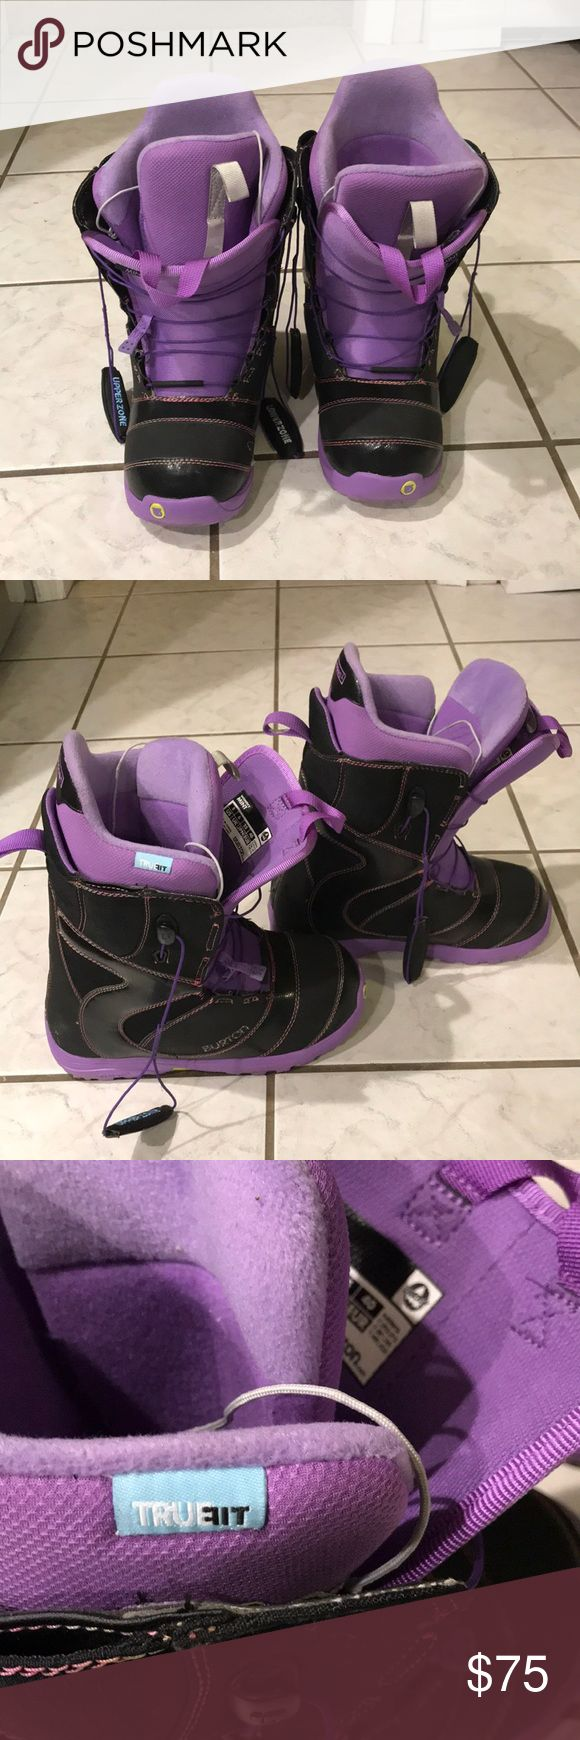 BURTON MINT Girls Snowboard Boots Size8 Only ridden a handful of times because they were too small for me, my loss is your gain on these. THEY RUN SMALL like all snowboard boots. insides never molded. quick laces are awesome on cold days when you don't feel like tying boots up!  ADD TO BUNDLE FOR PRIVATE OFFER. Burton Shoes Winter & Rain Boots